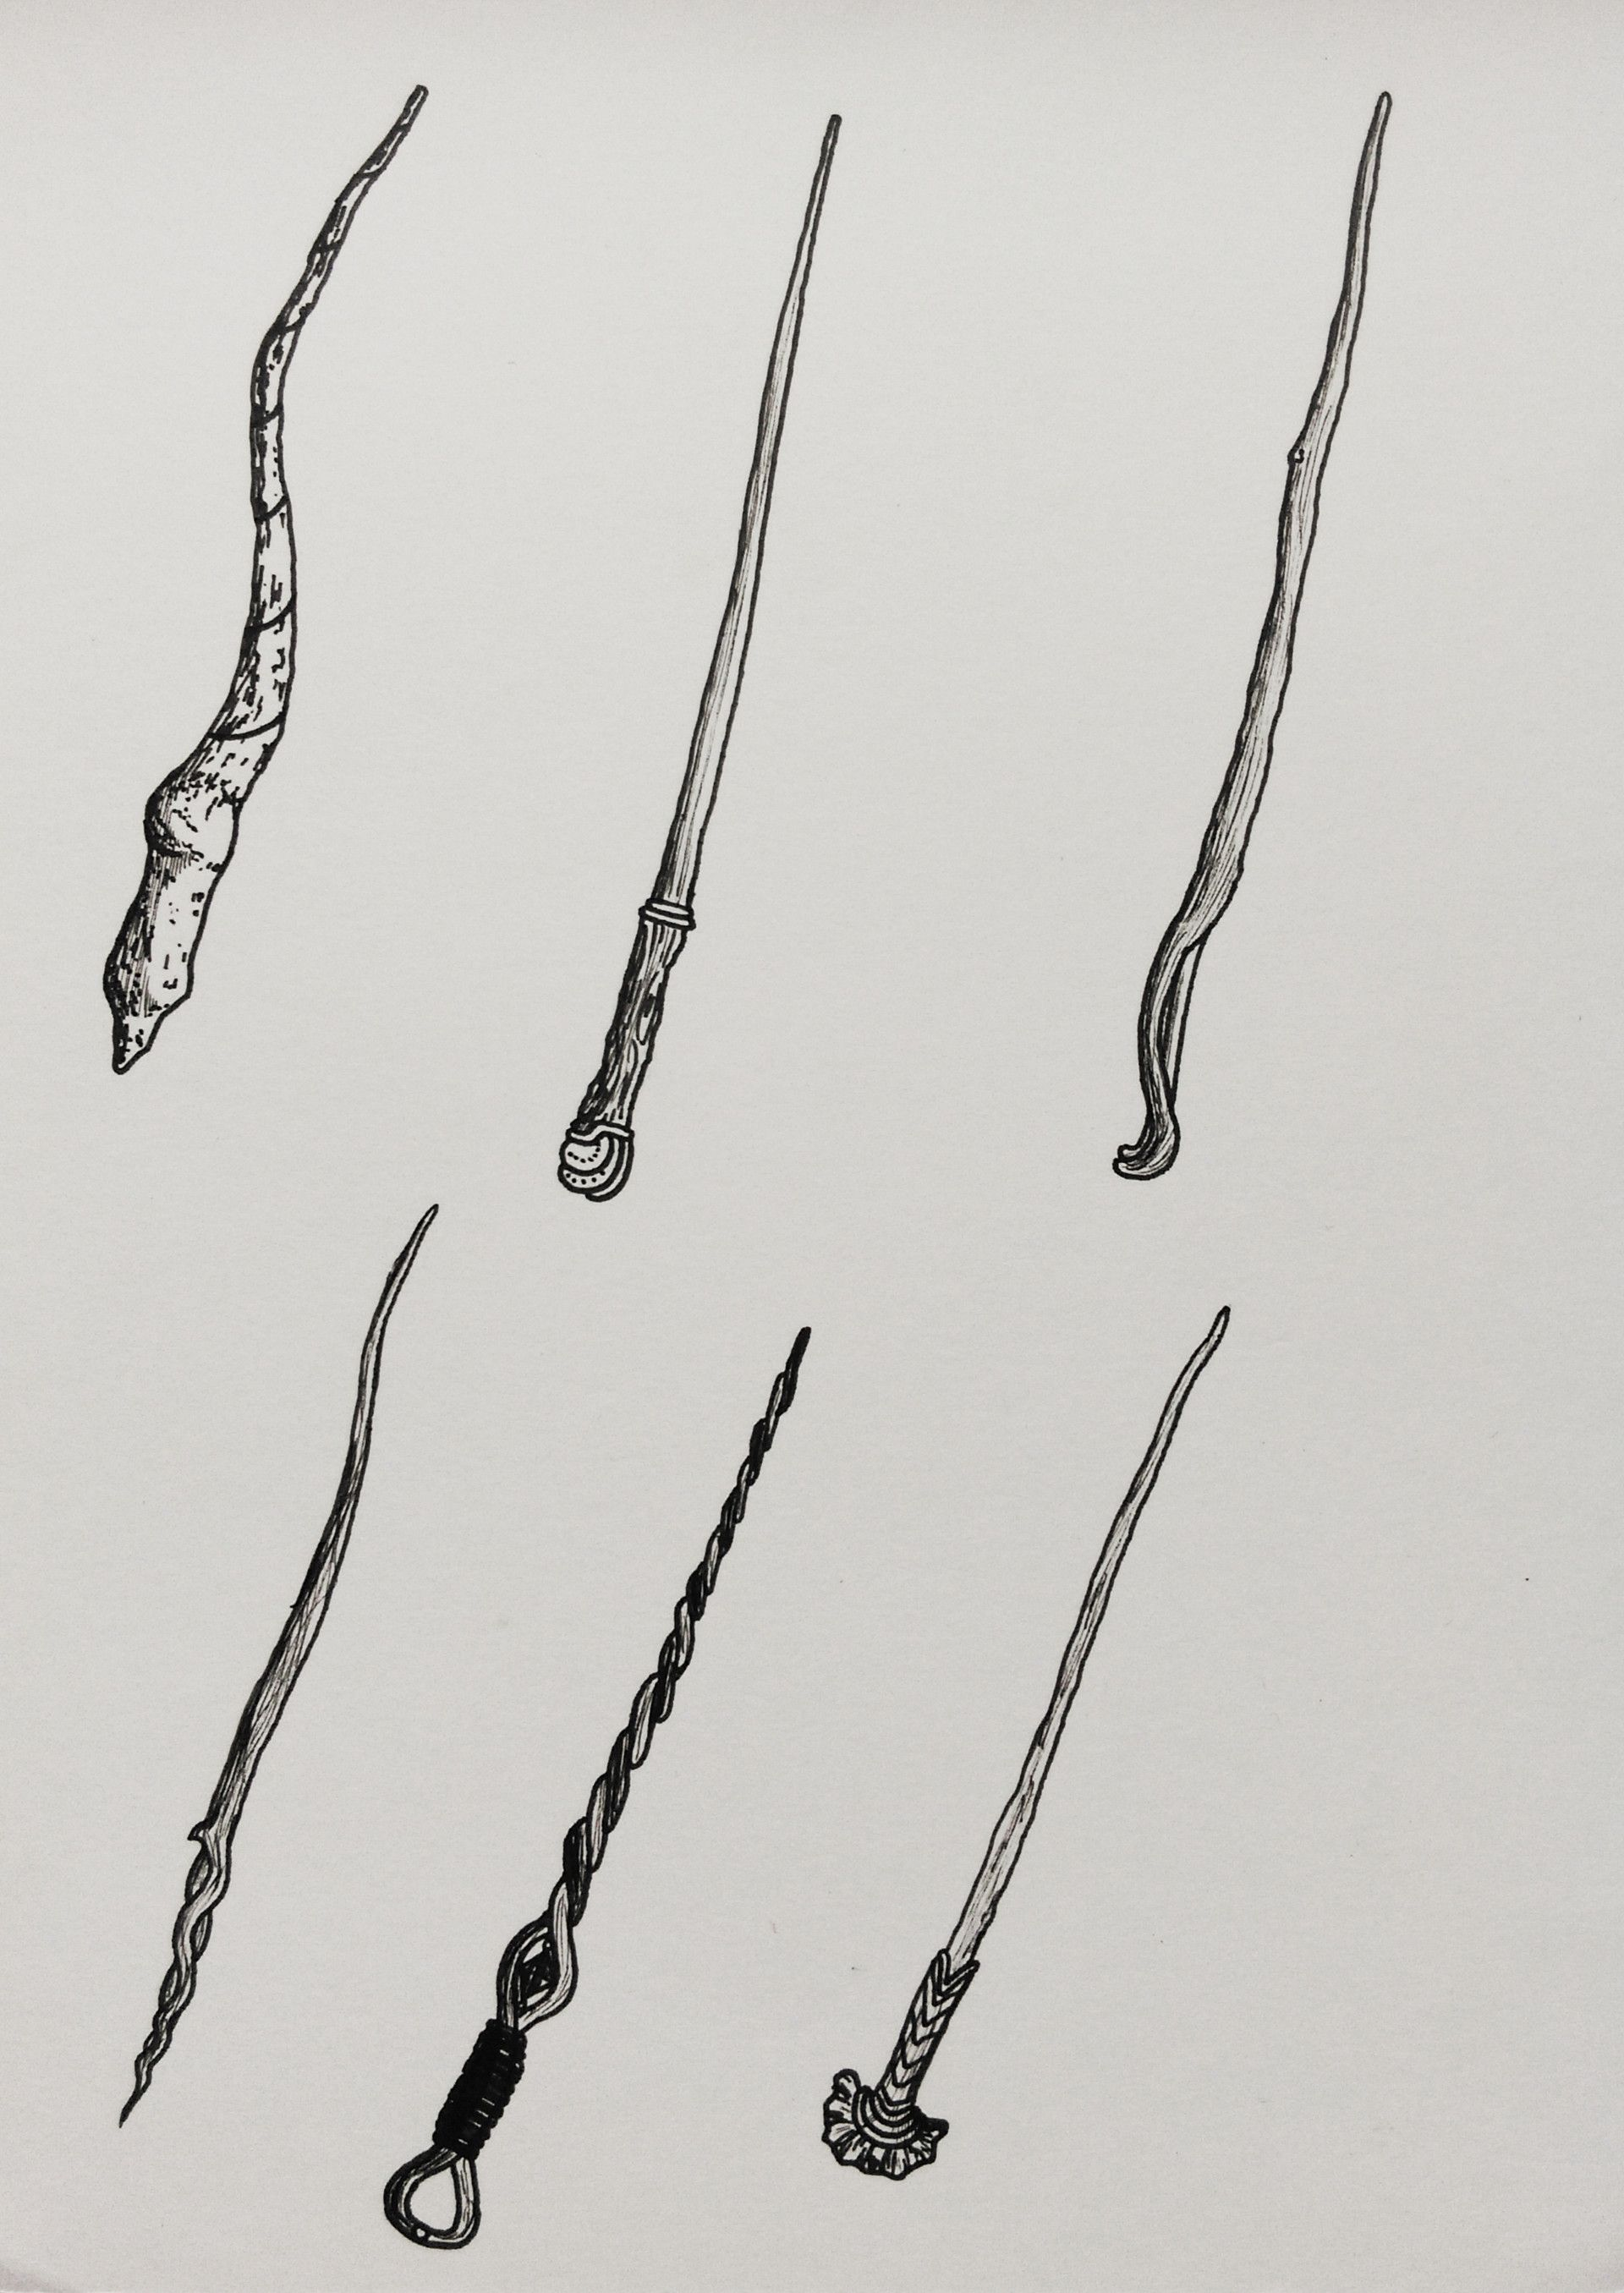 Wizard Staff Character Drawing Walking Sticks Ideas Wands Weapons Harry Potter Doodles For Guns